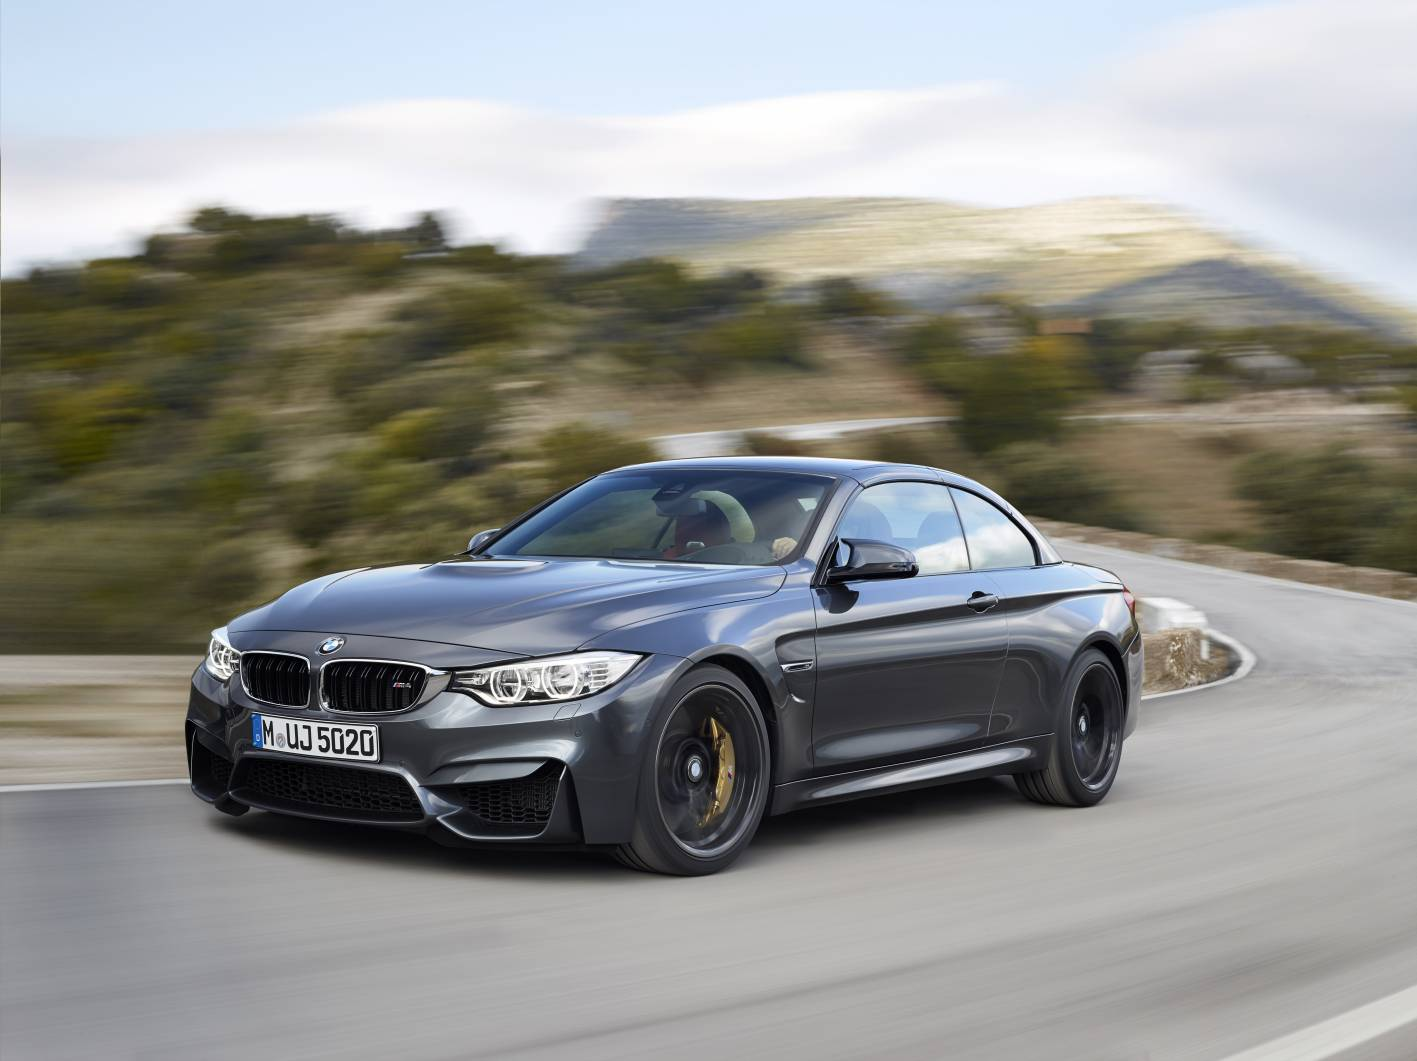 bmw m4 convertible hardtop closed. Black Bedroom Furniture Sets. Home Design Ideas